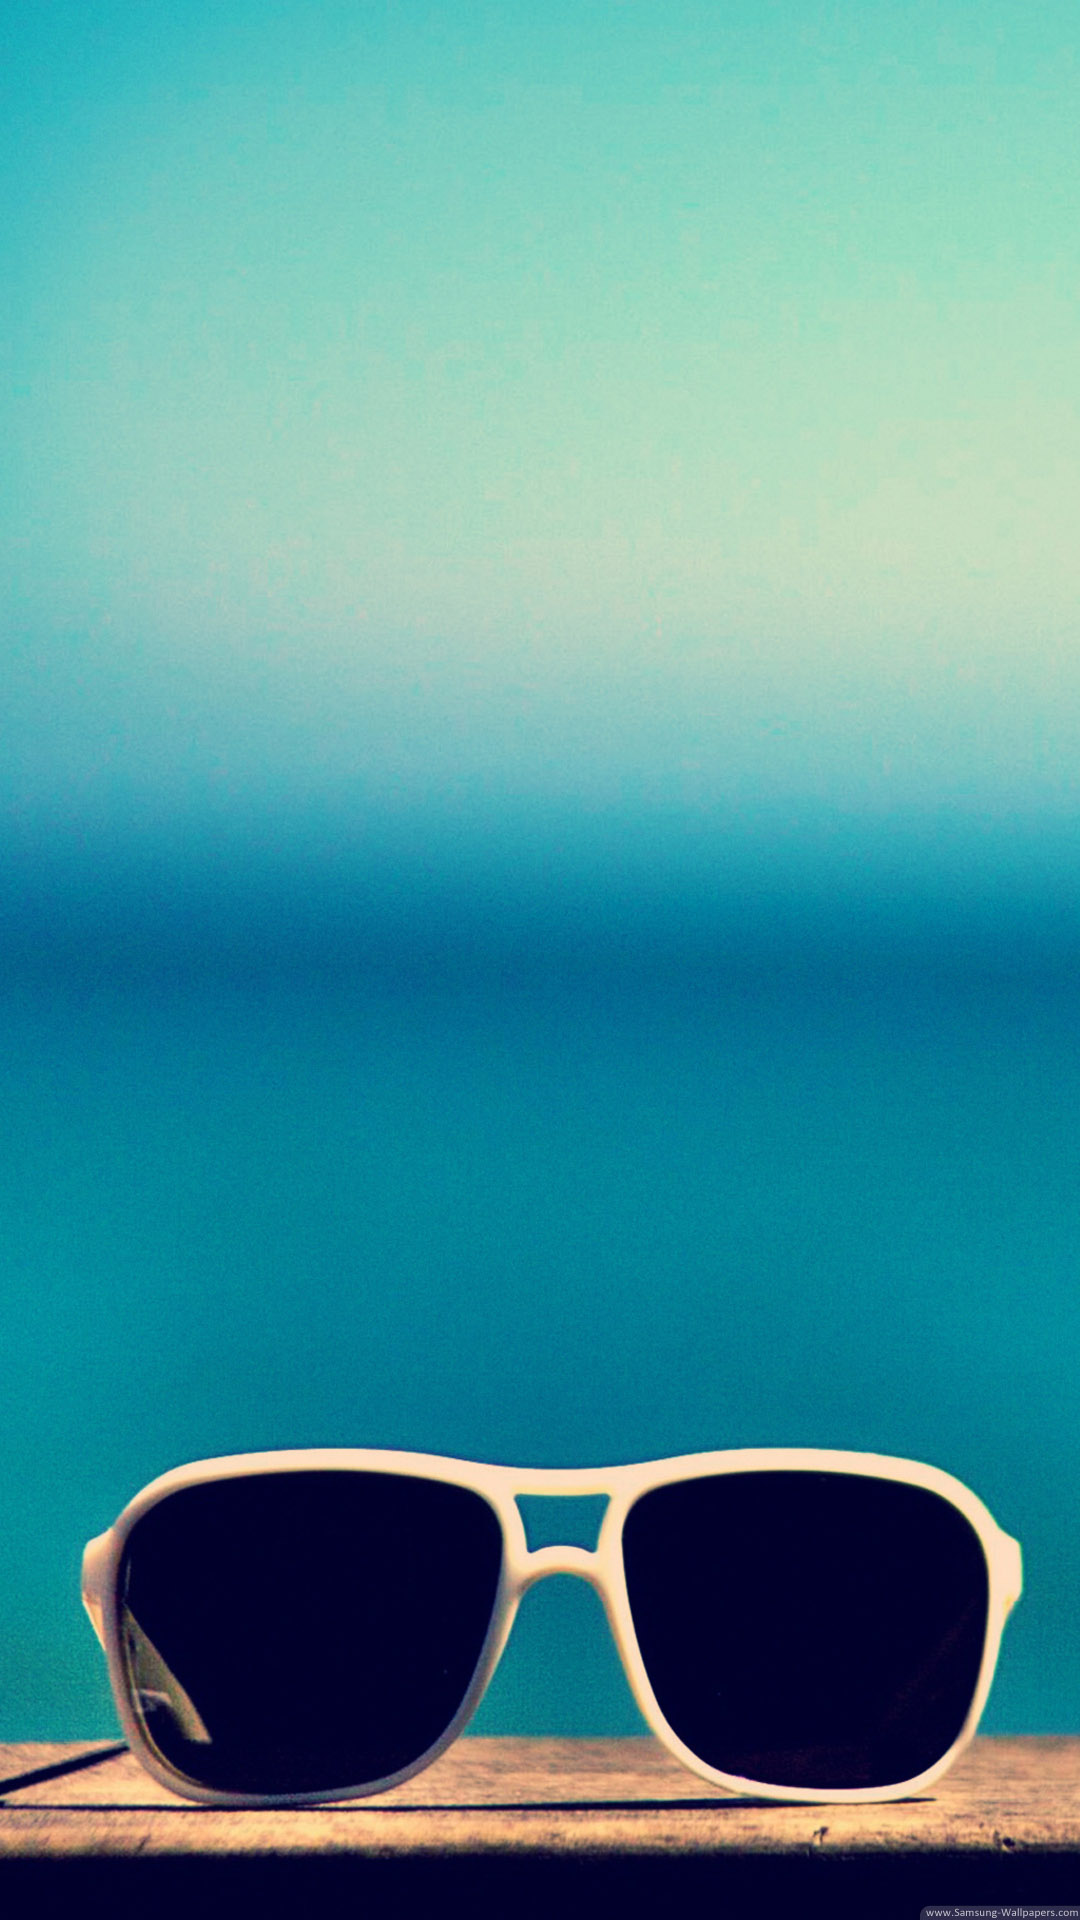 Iphone 5 wallpapers 0232 7995 the wondrous pics - Cool Hipster Sunglasses Iphone 6 Plus Hd Wallpaper Cool Iphone